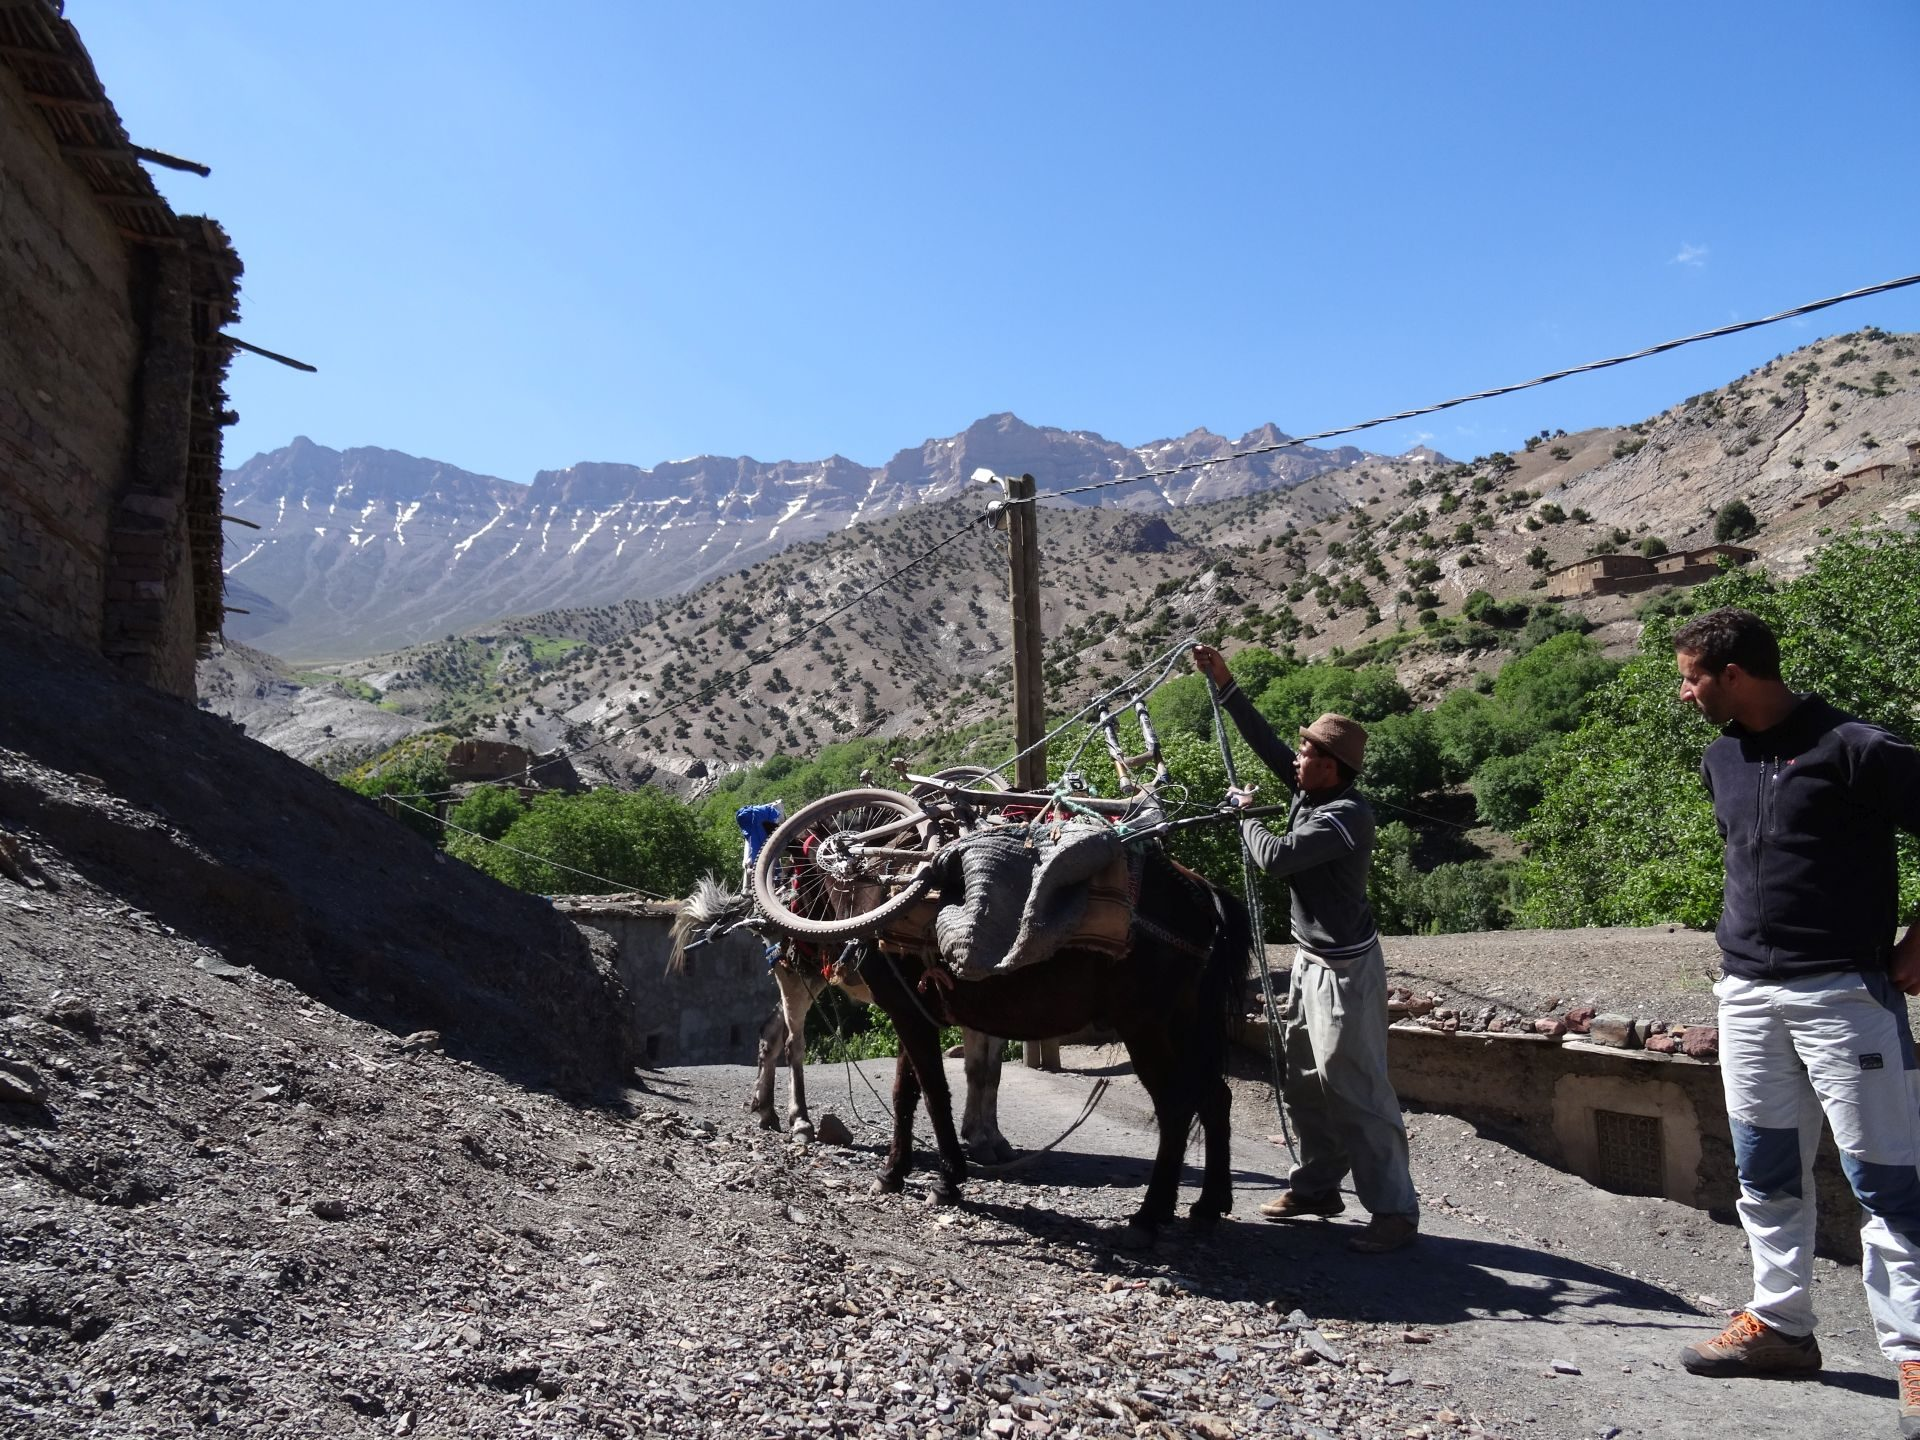 Day 4 - And here they are, the two mules which will help us make the long, steep & rocky climb over Tizi-n-Rughuelt pass. At Ghougoult, with snow in the gullies of the long ridge of Jbel Tarkedit (12,198 ft) in the distance. © Steve Woodward